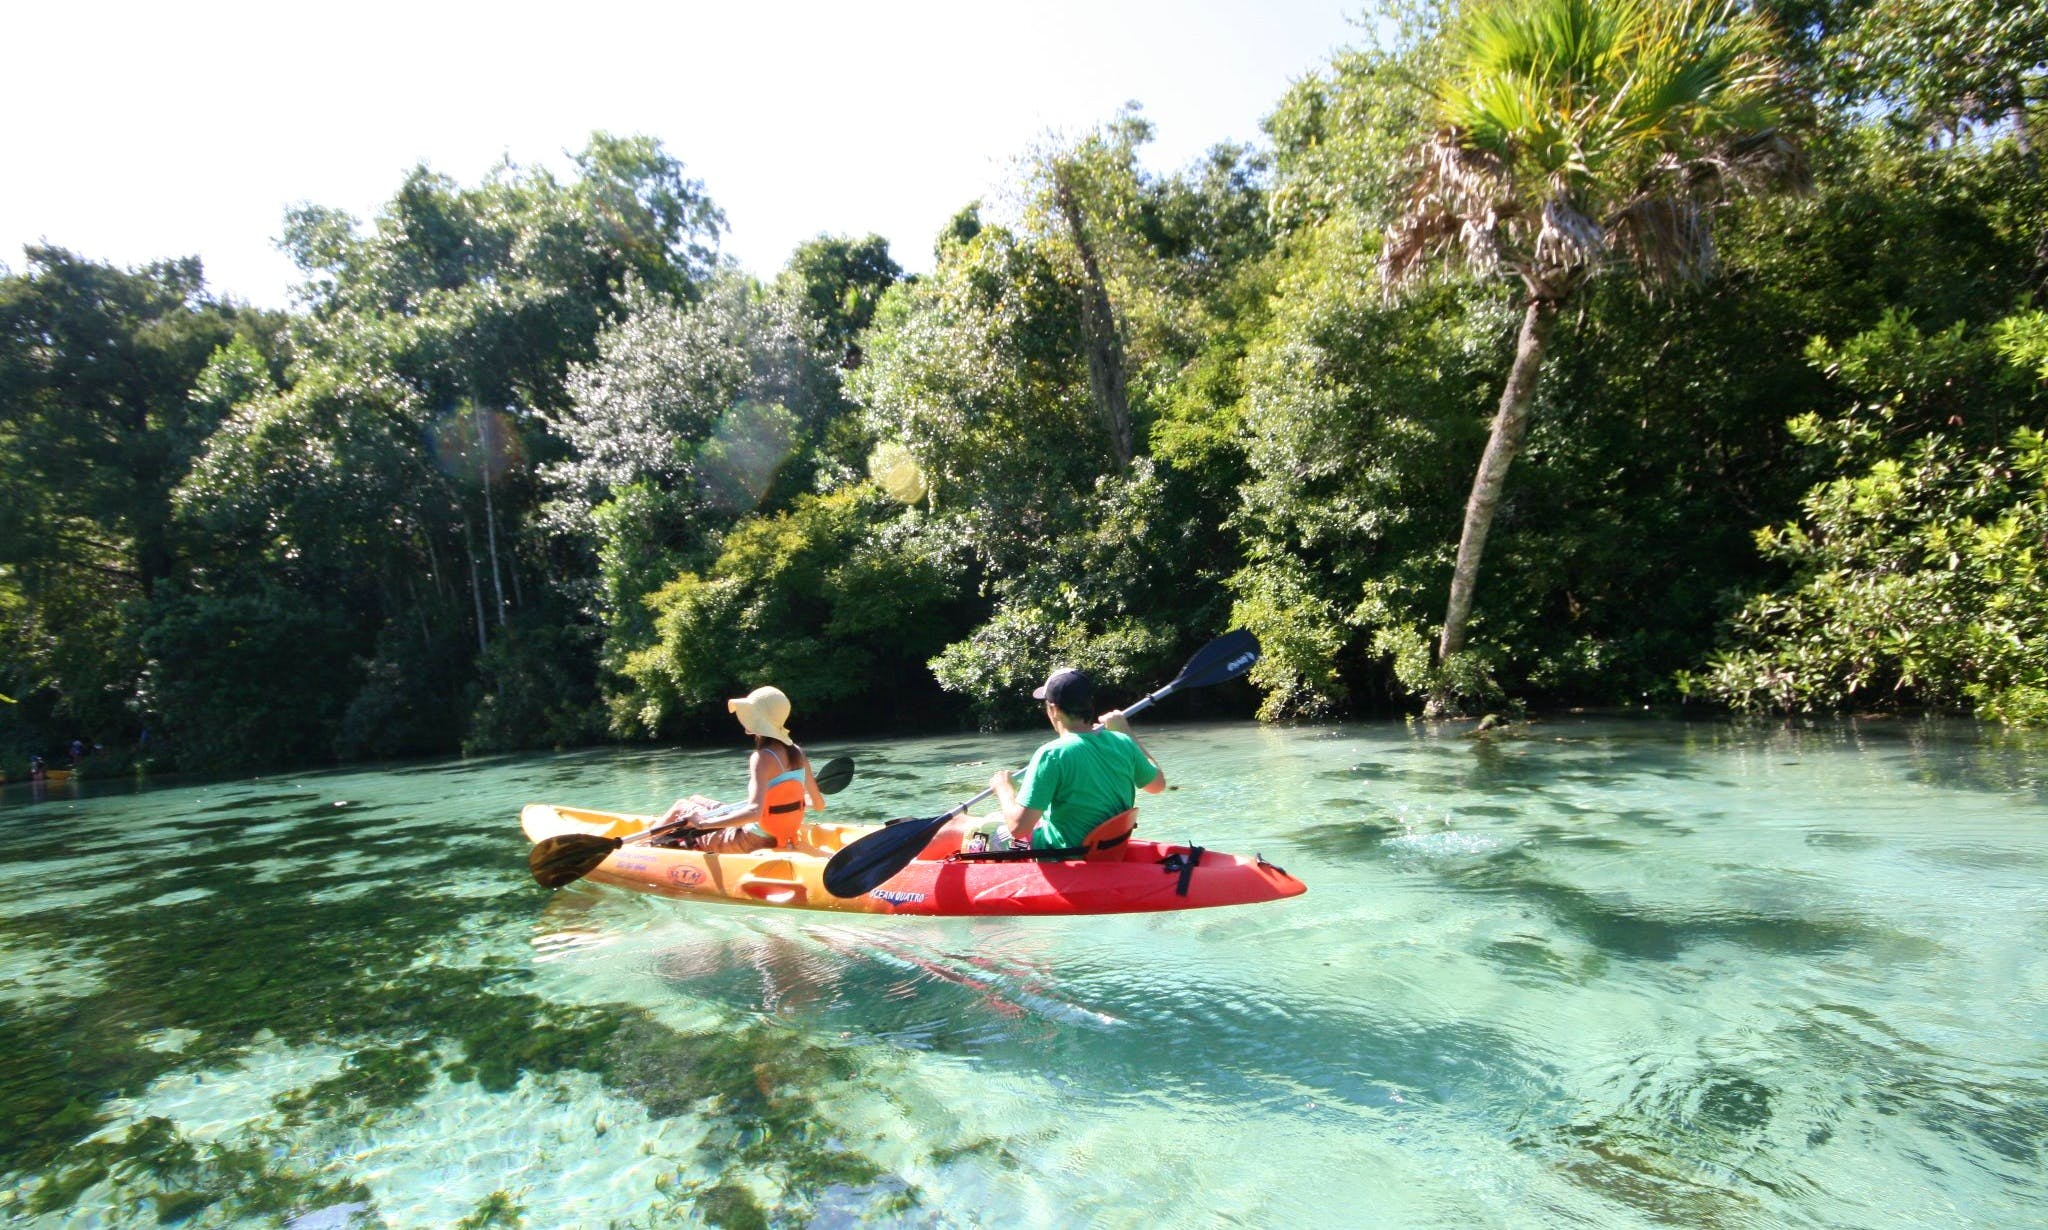 Kayak & Canoe Rentals from Spring Hill, Florida at Weeki Wachee State Park